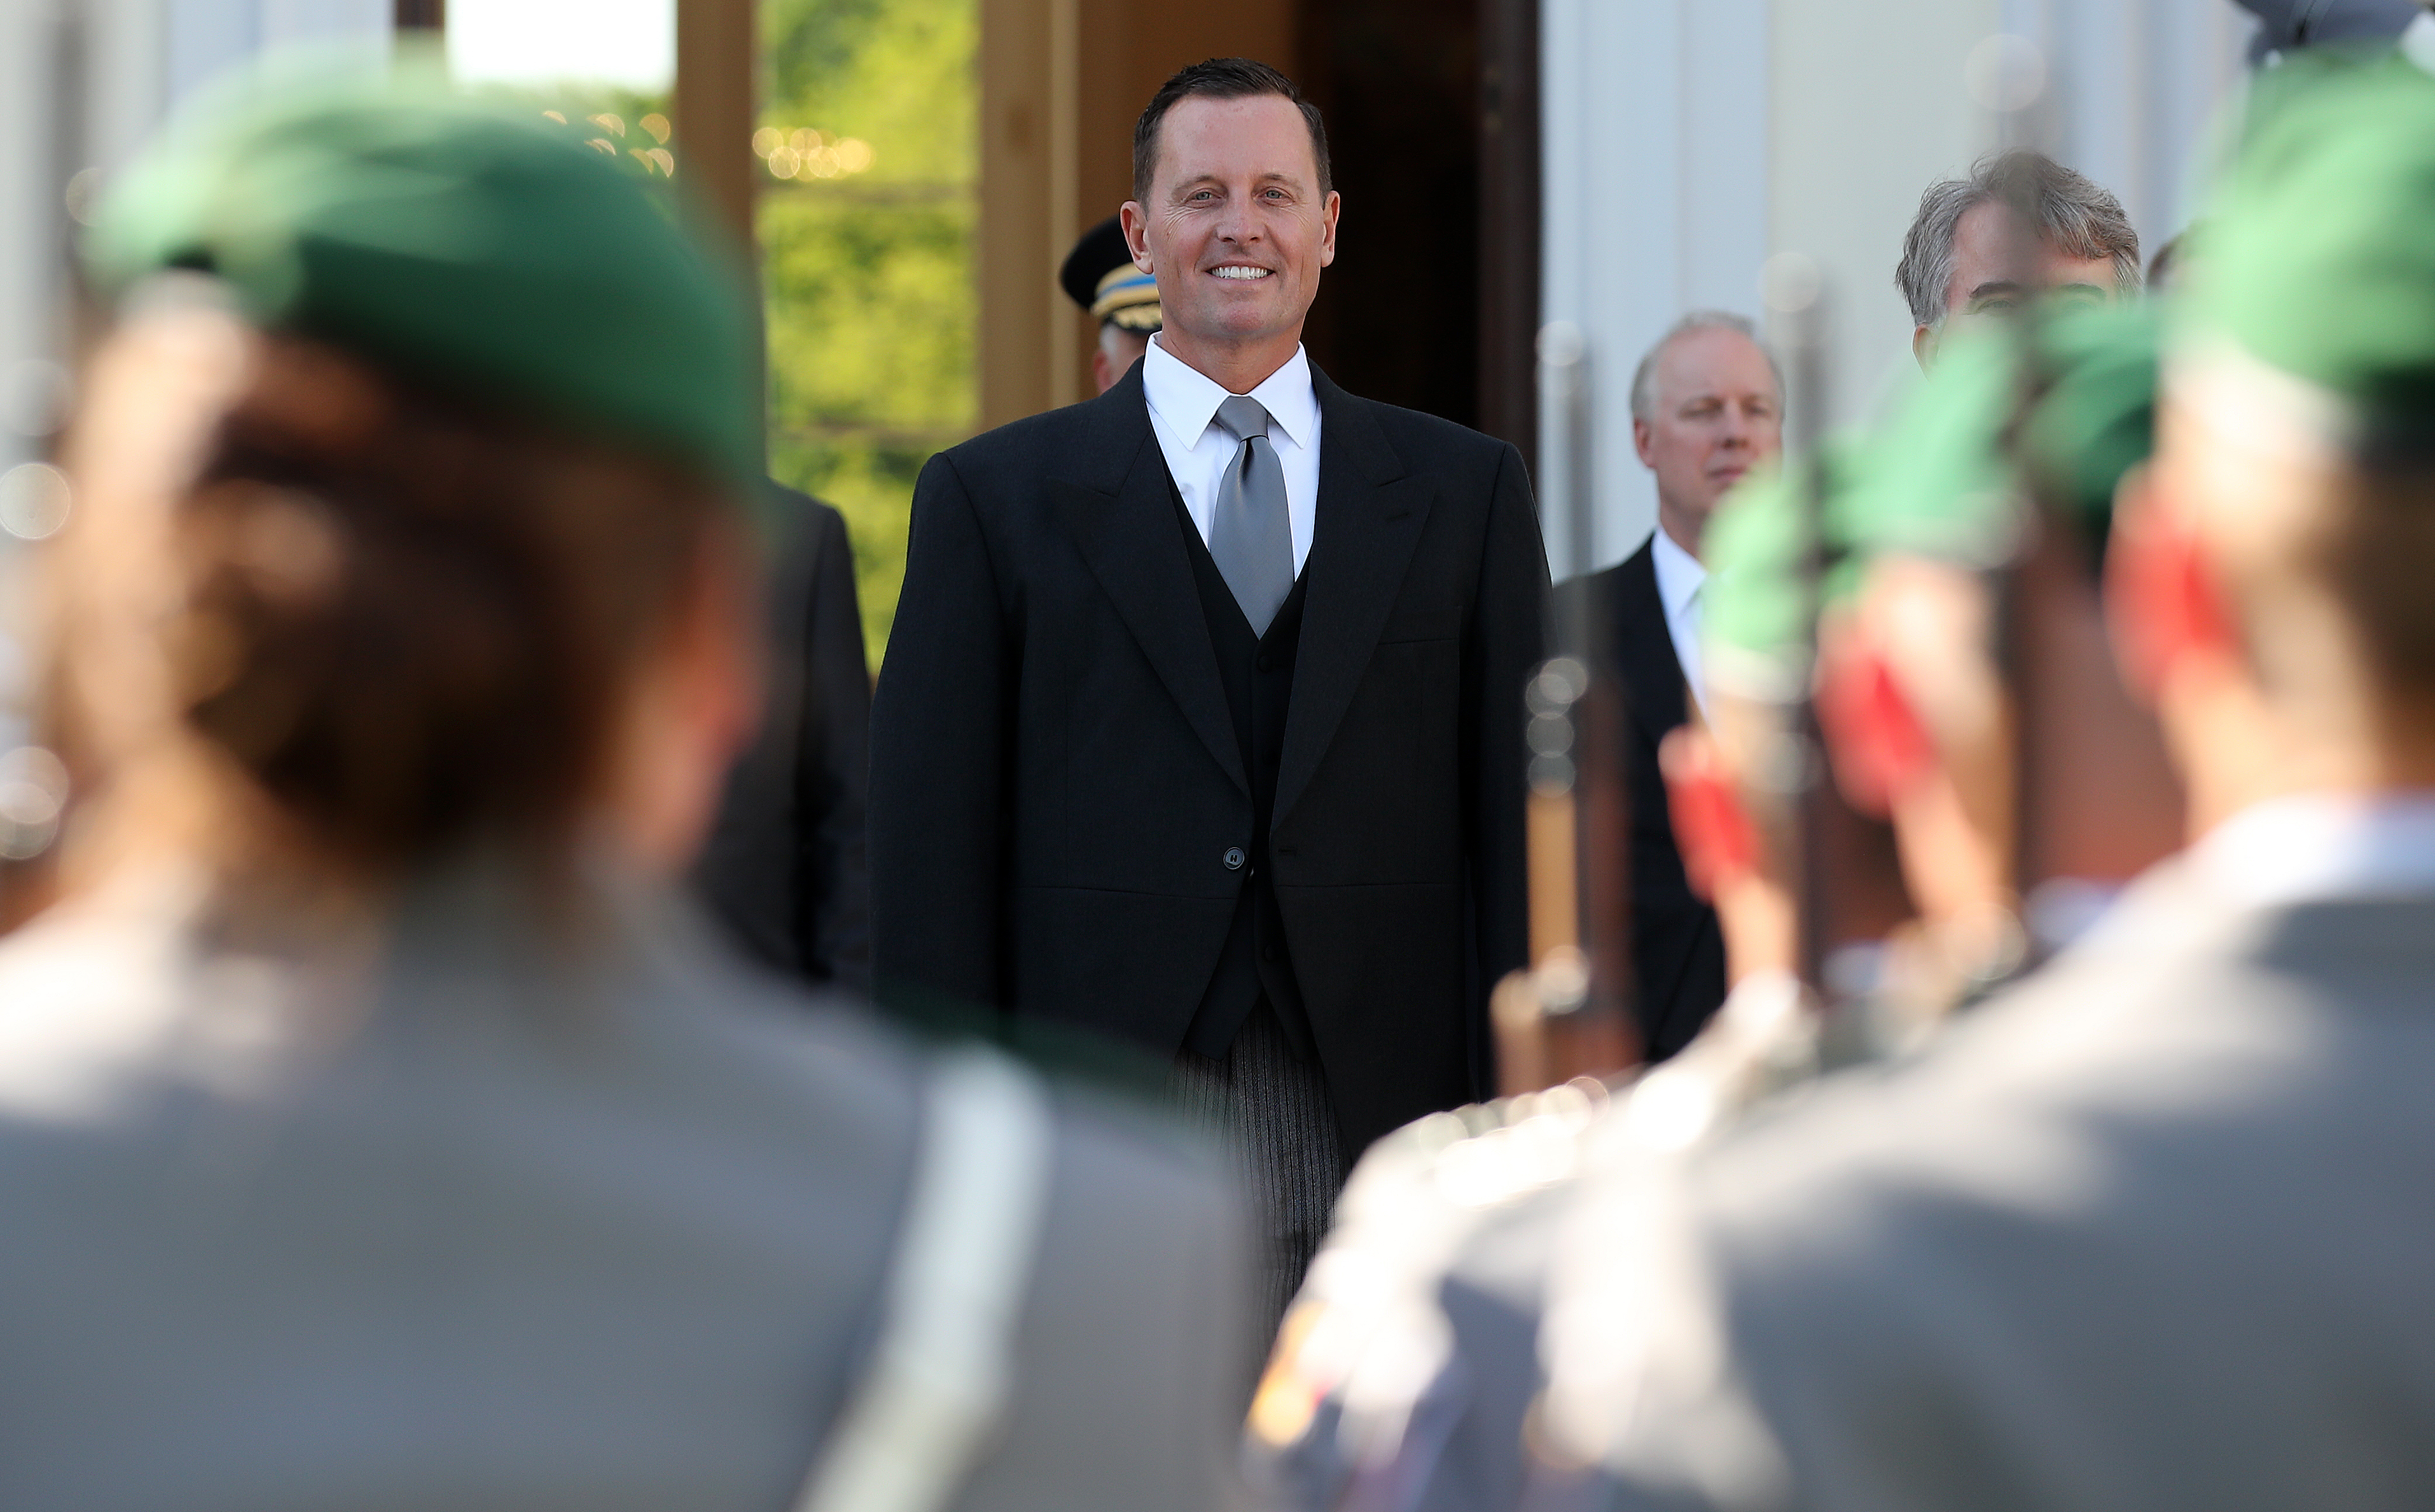 epa06719536 The new US Ambassador to Germany, Richard Allen Grenell (C) stands in front of the Guard of Honour after his diplomatic accreditation ceremony at Bellevue Palace in Berlin, Germany, 08 May 2018. The position of US Ambassador to Germany was left vacant for more than one year.  EPA-EFE/FELIPE TRUEBA